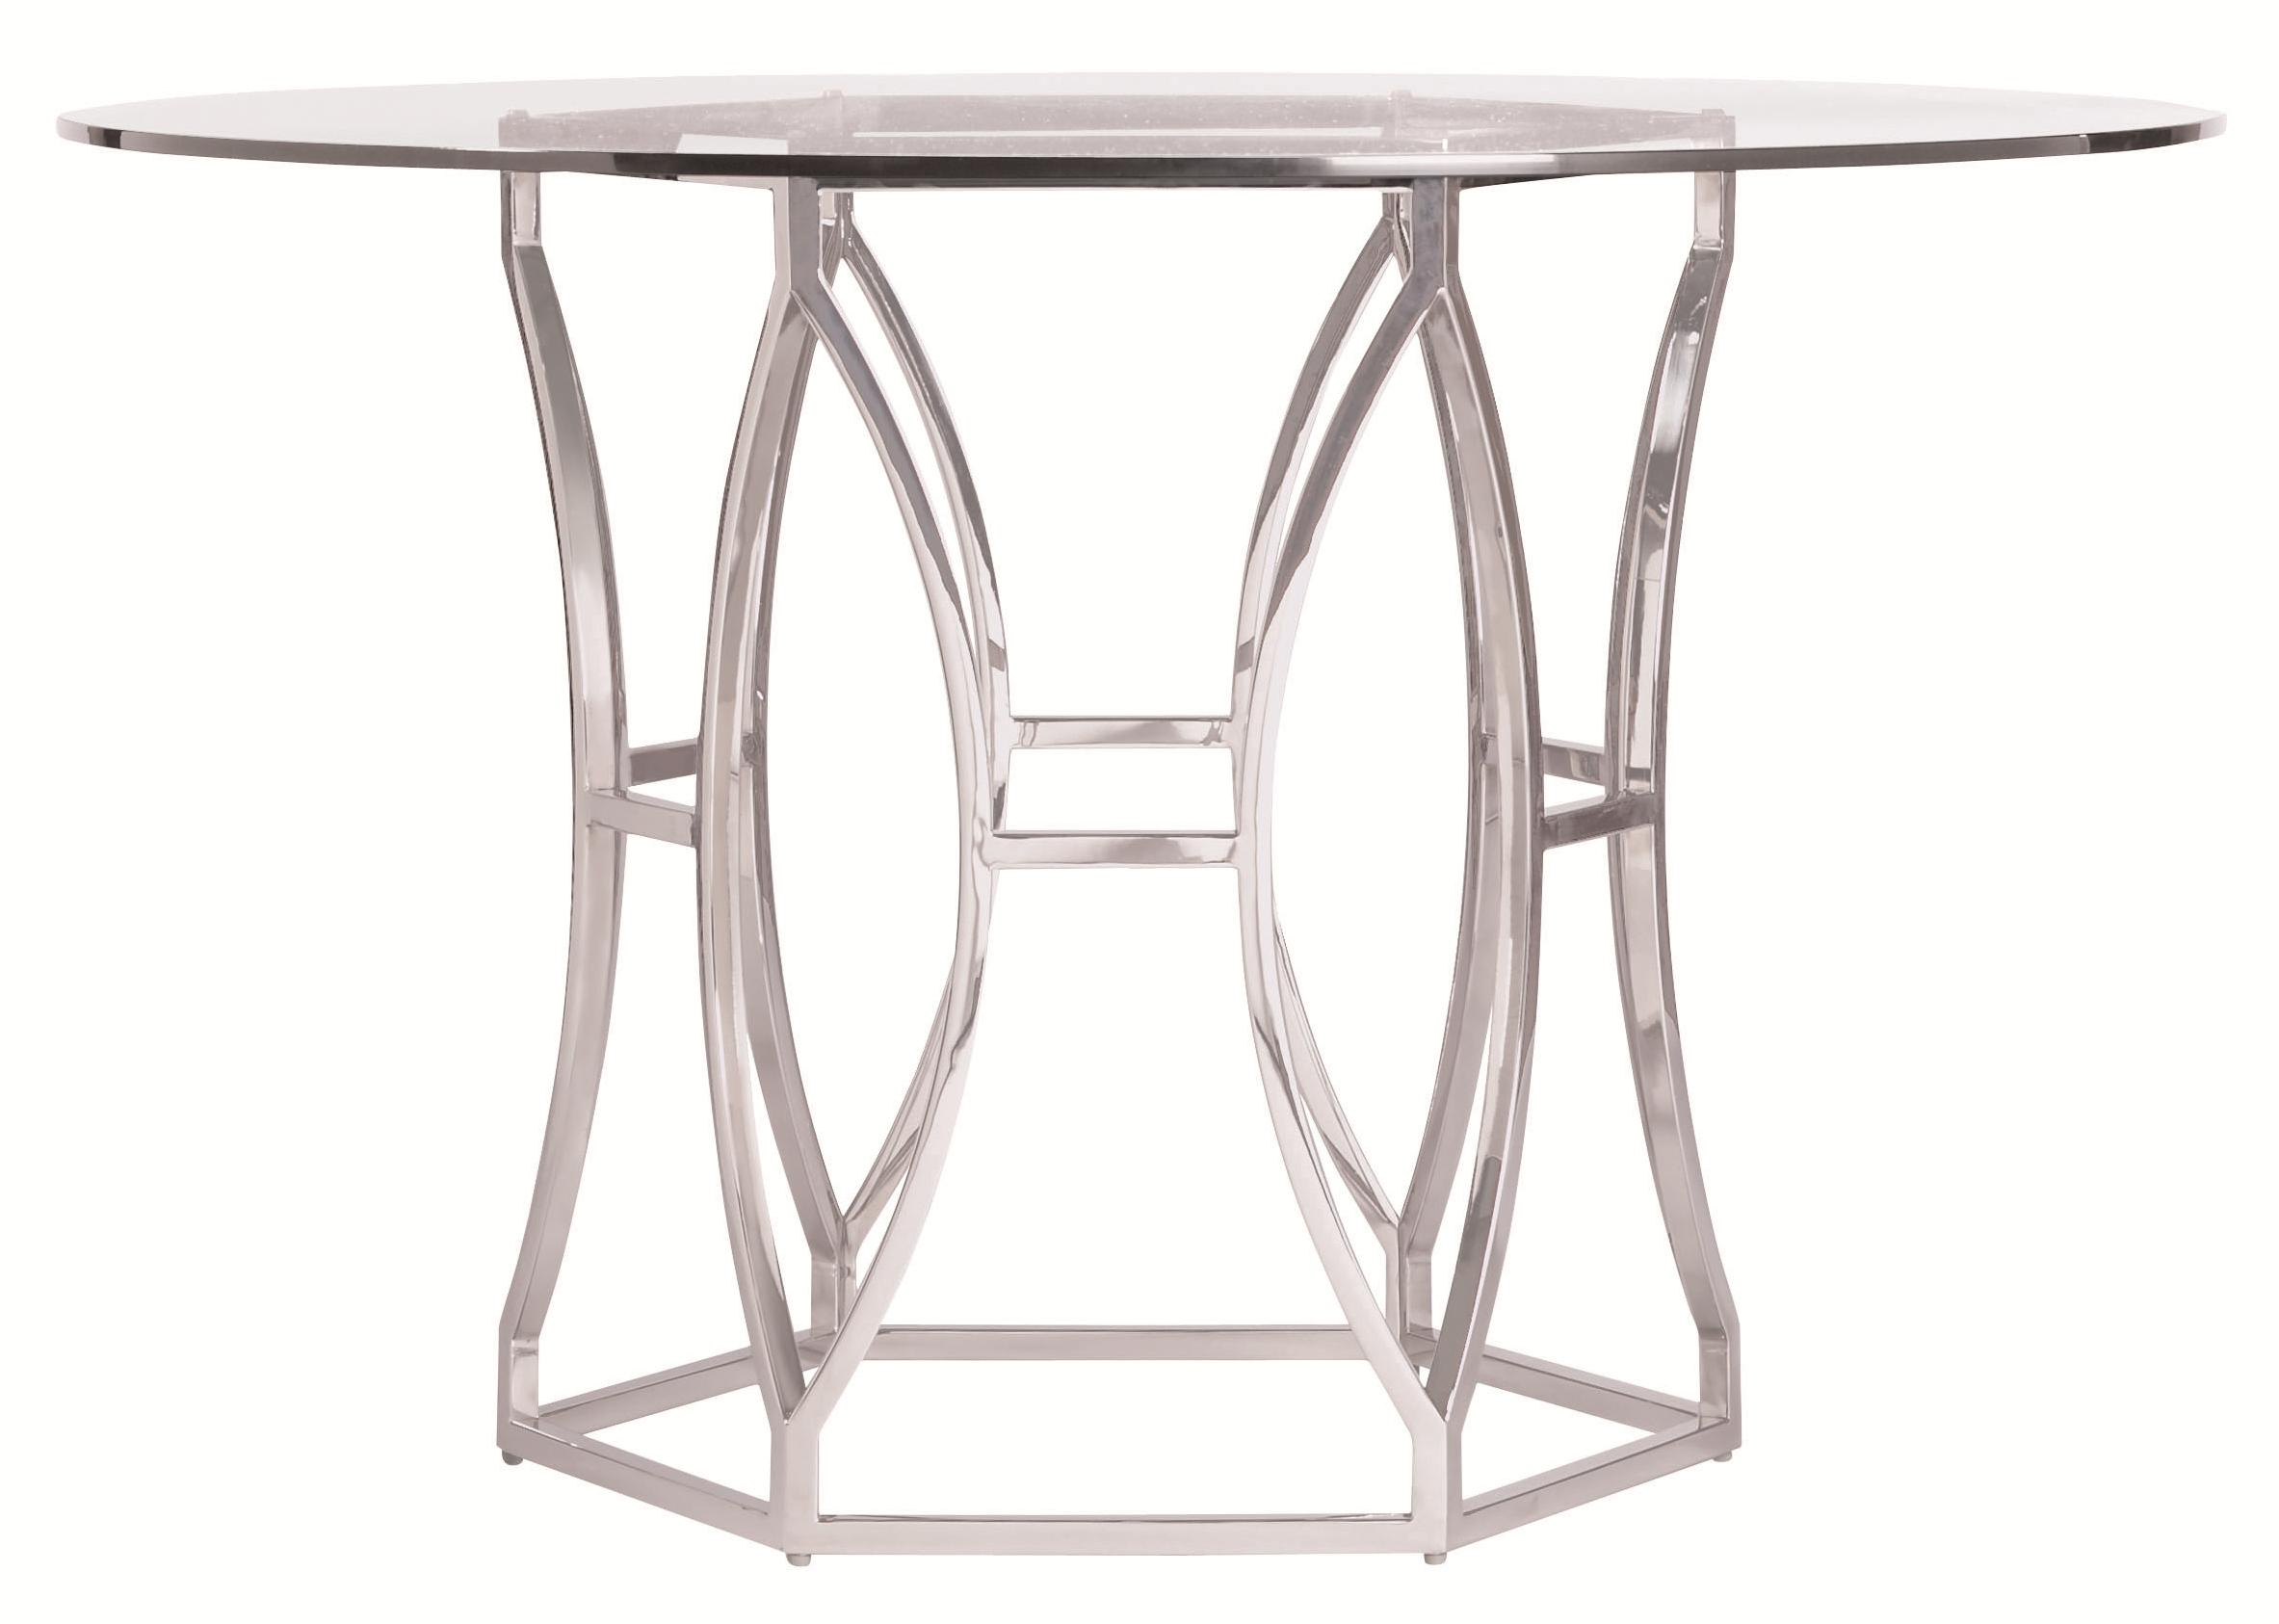 Bernhardt argent modern round dining table with metal base - Table base for round glass top ...